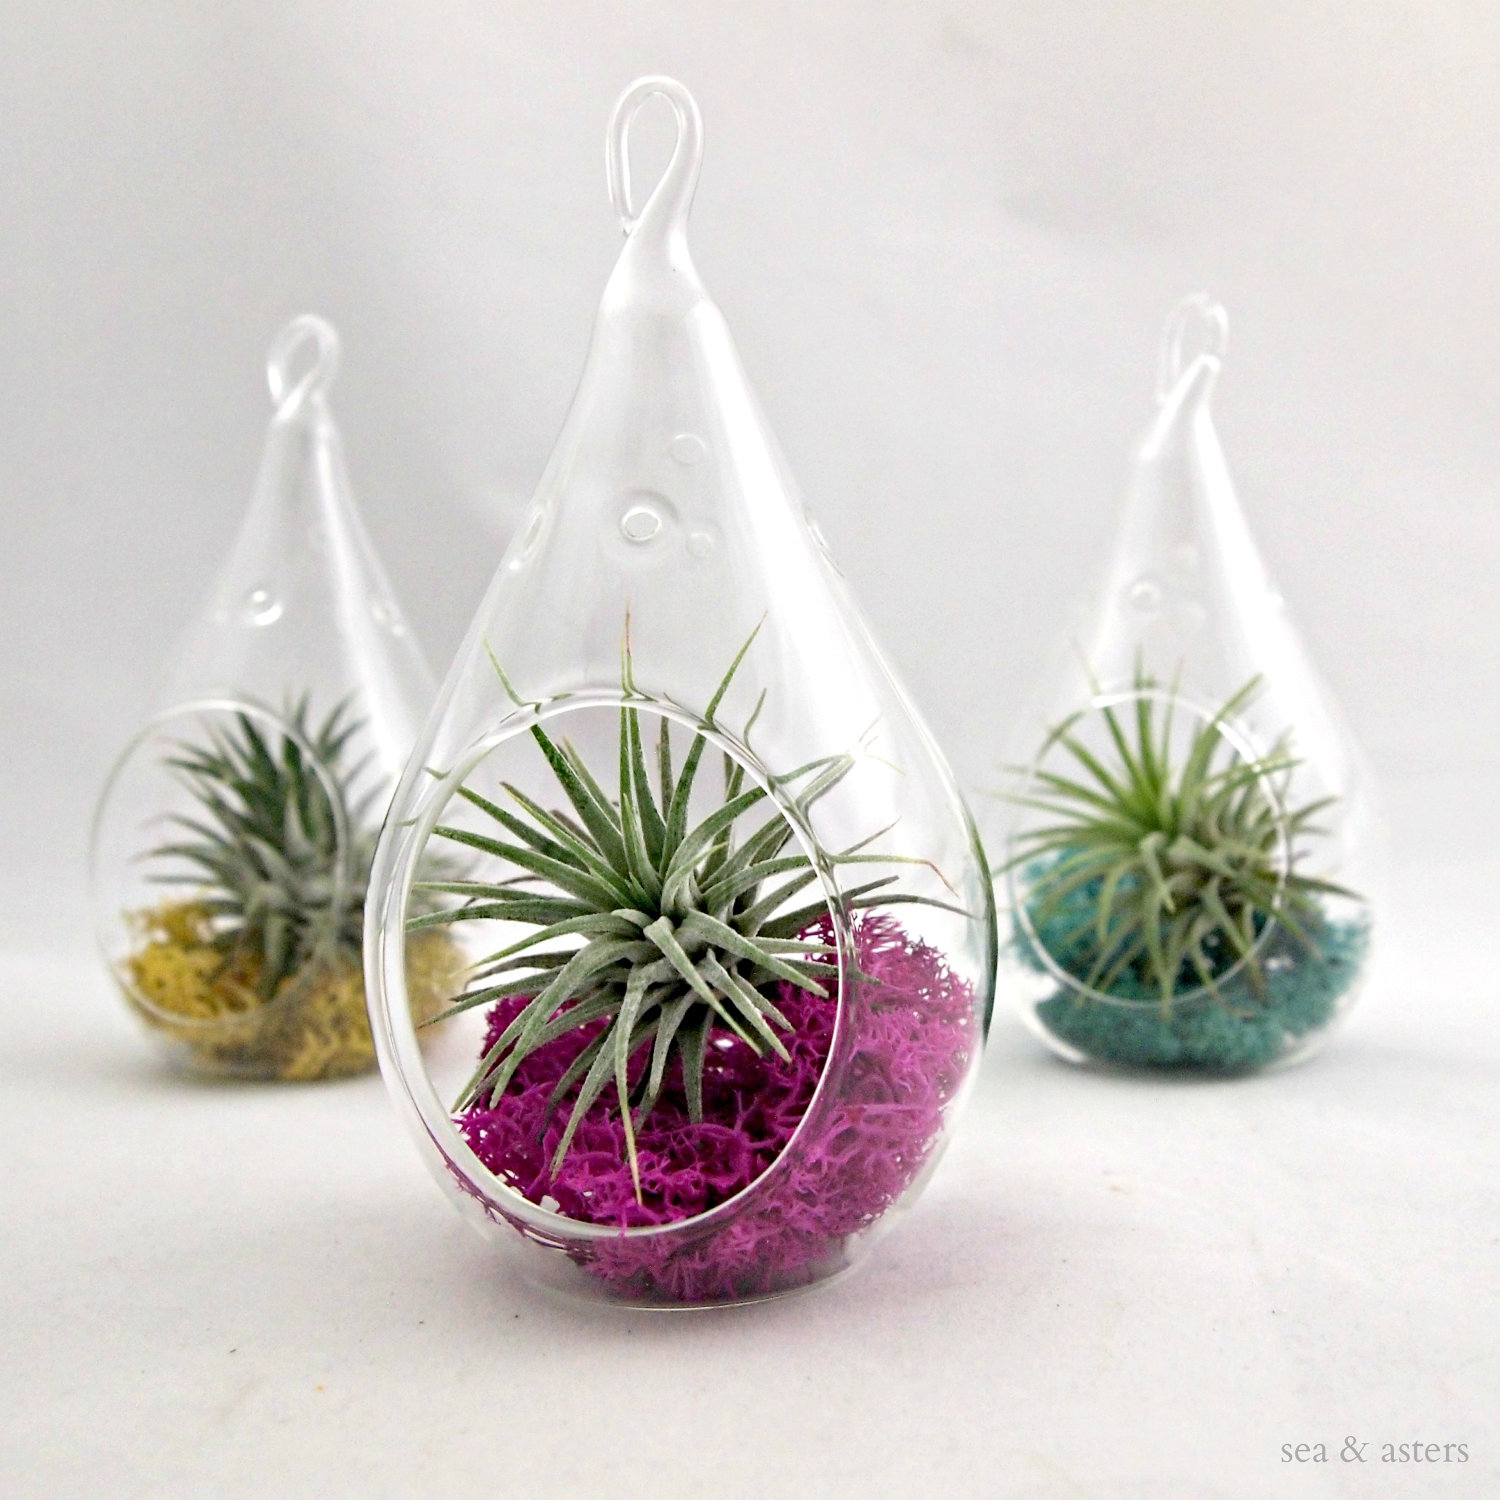 Hanging Pear Shaped Plant Terrarium Container